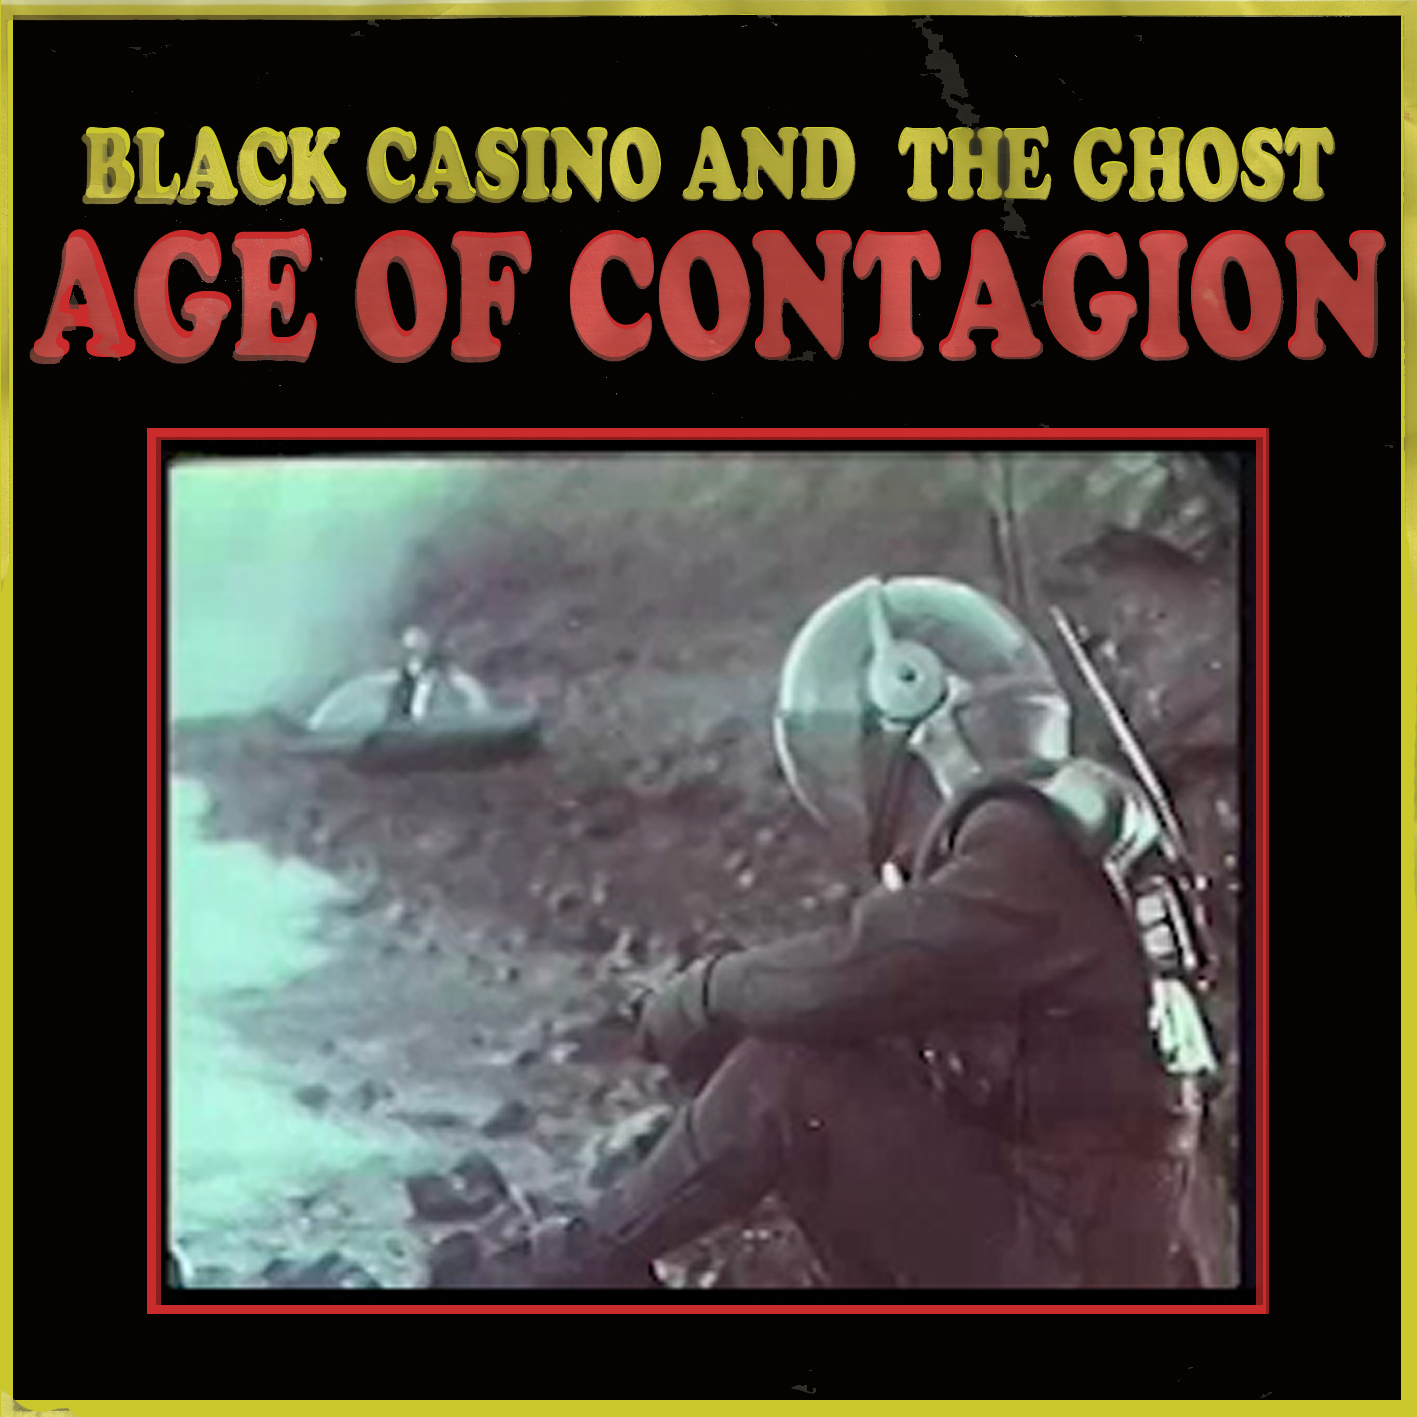 Black casino and the ghost wiki